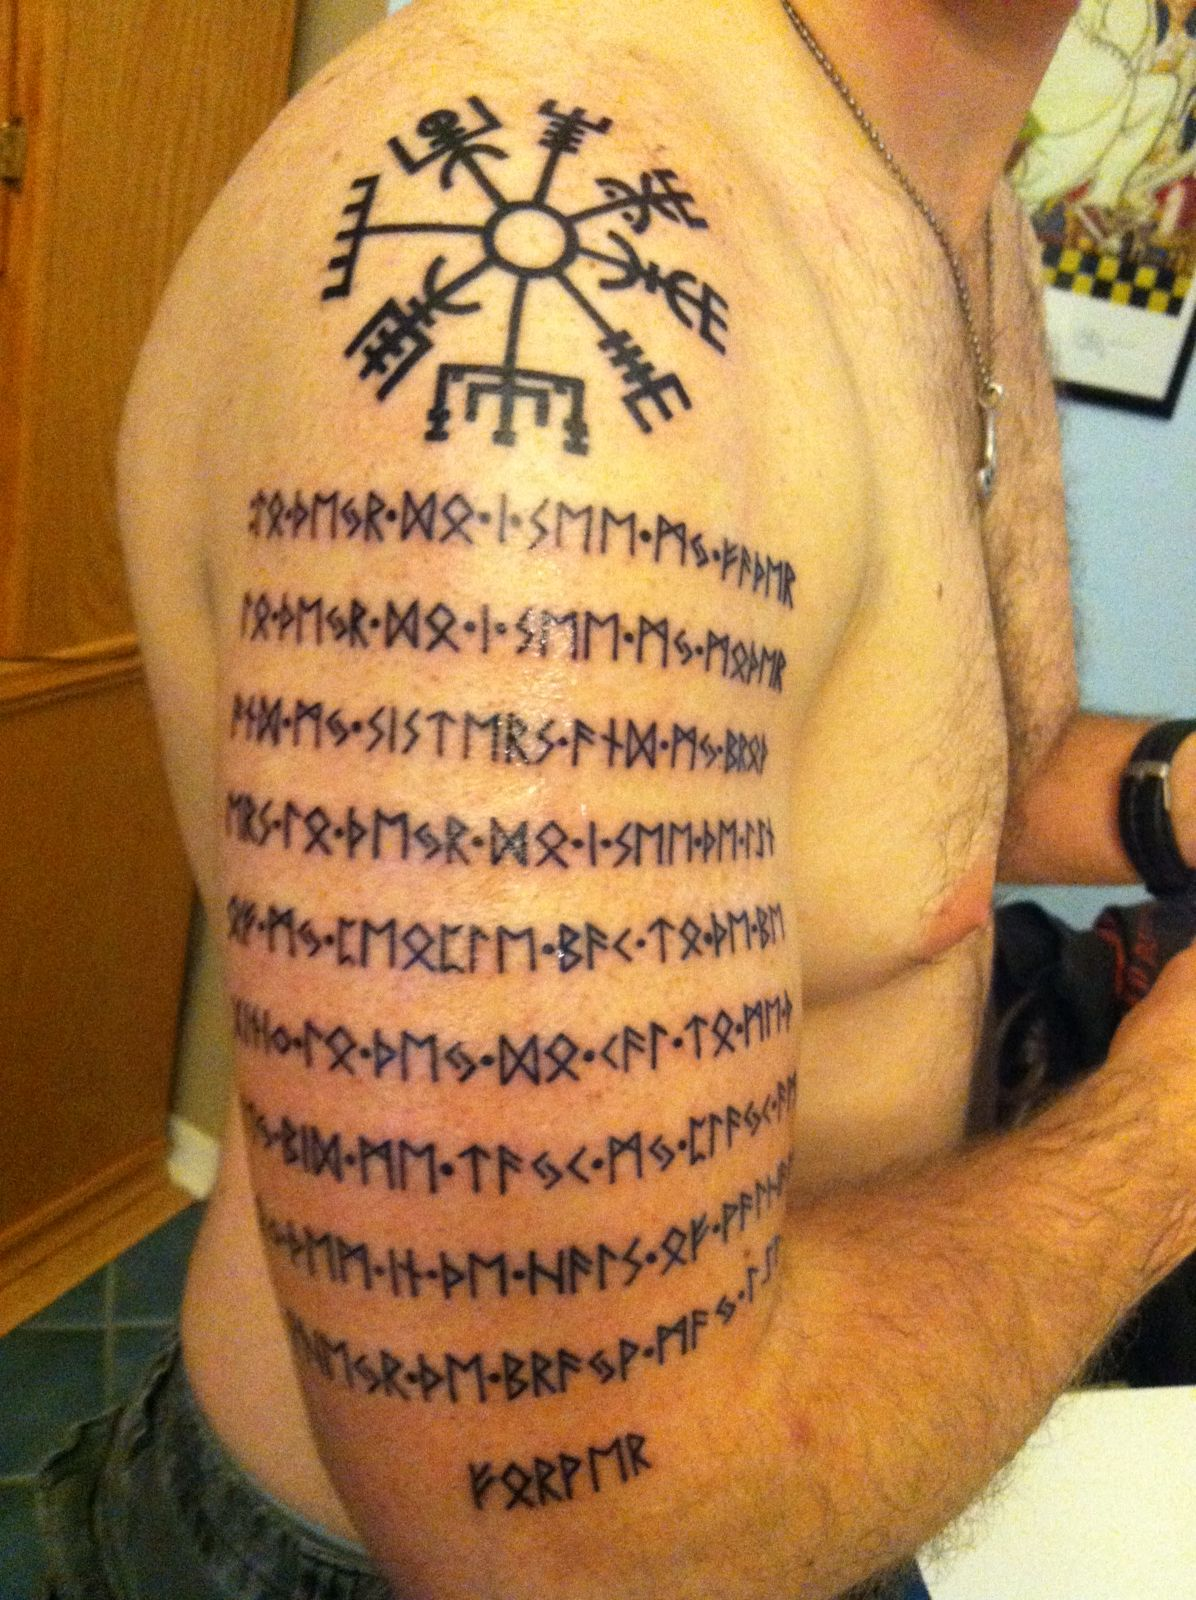 Runic Prayer And Compass With My Dads Ashes Mixed Into The Ink